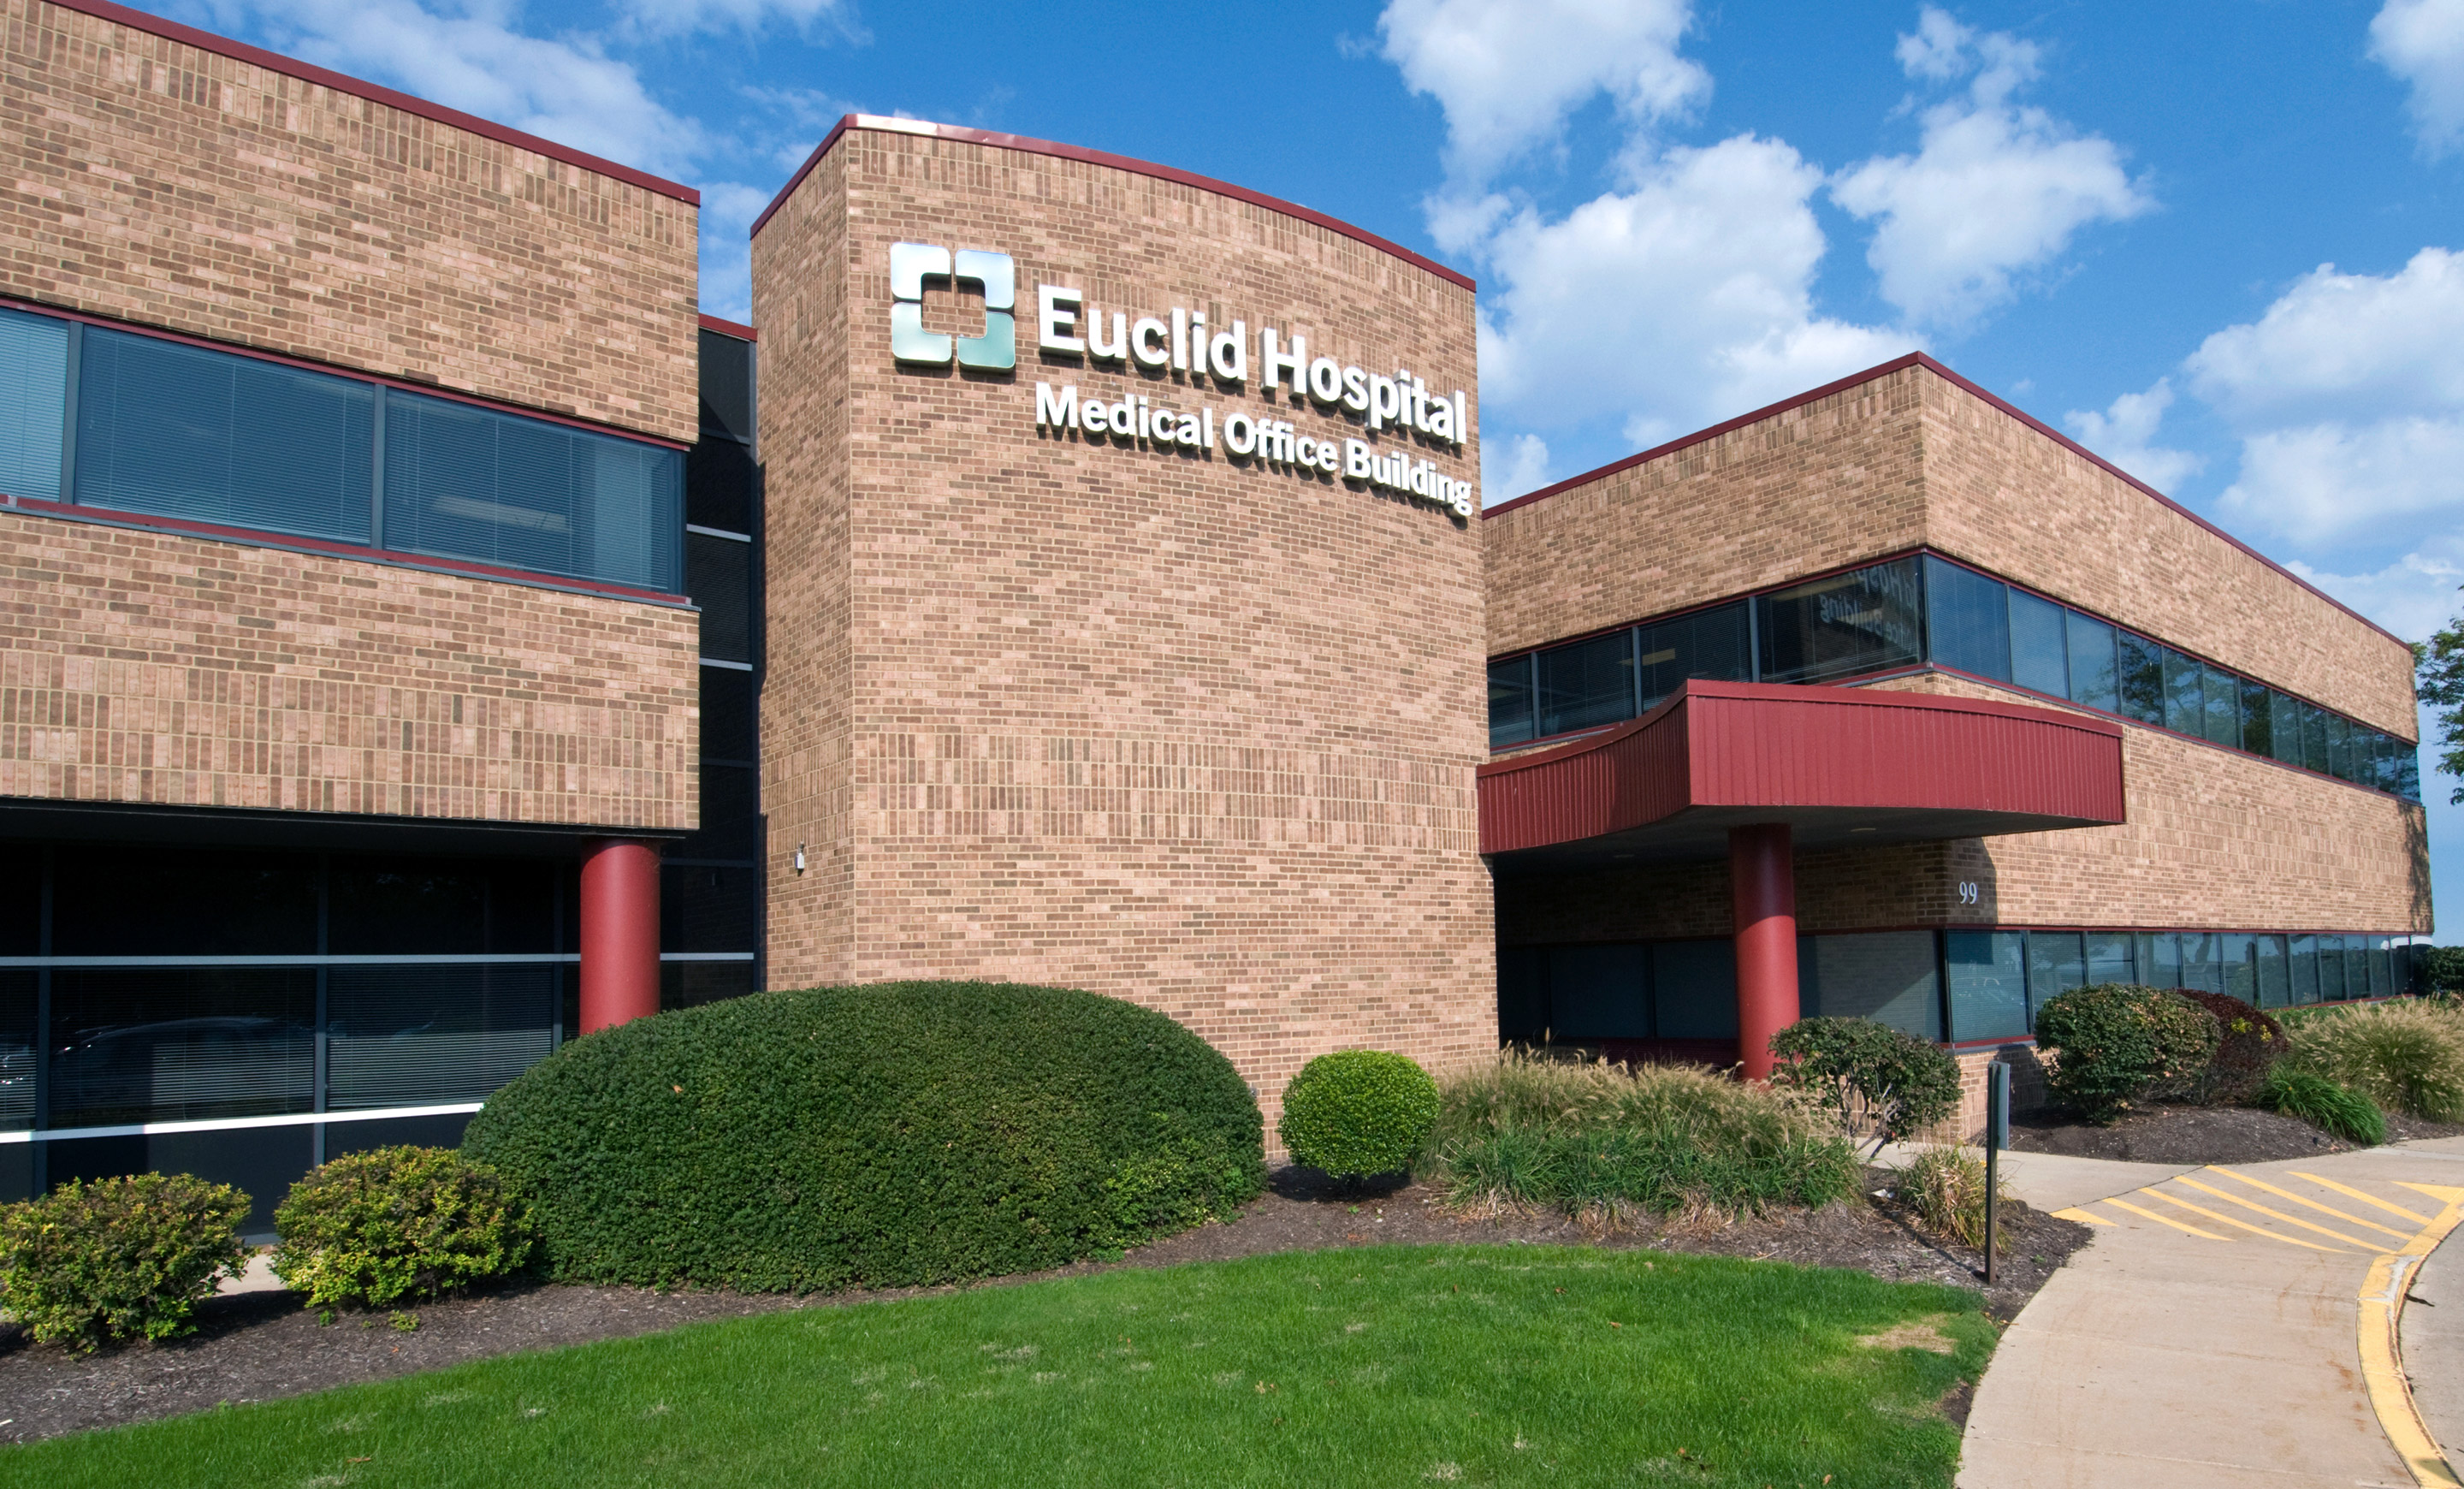 Euclid Medical Office